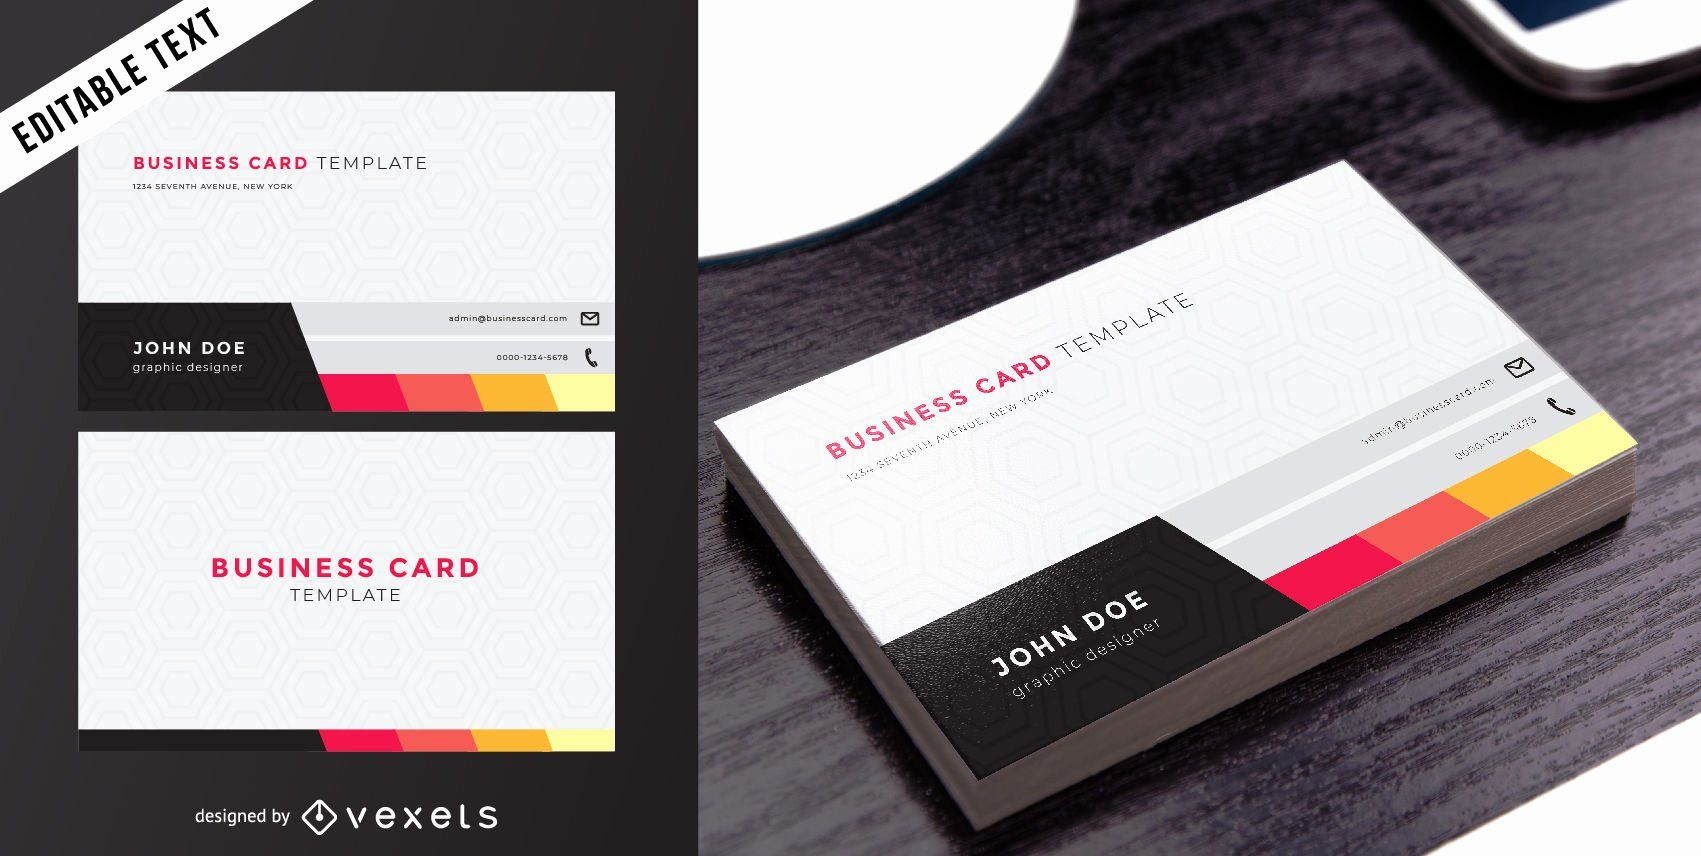 Double Sided Business Cards Templates Best Of Classy Two Sided Business Card Vec Business Card Template Word Business Card Template Double Sided Business Cards